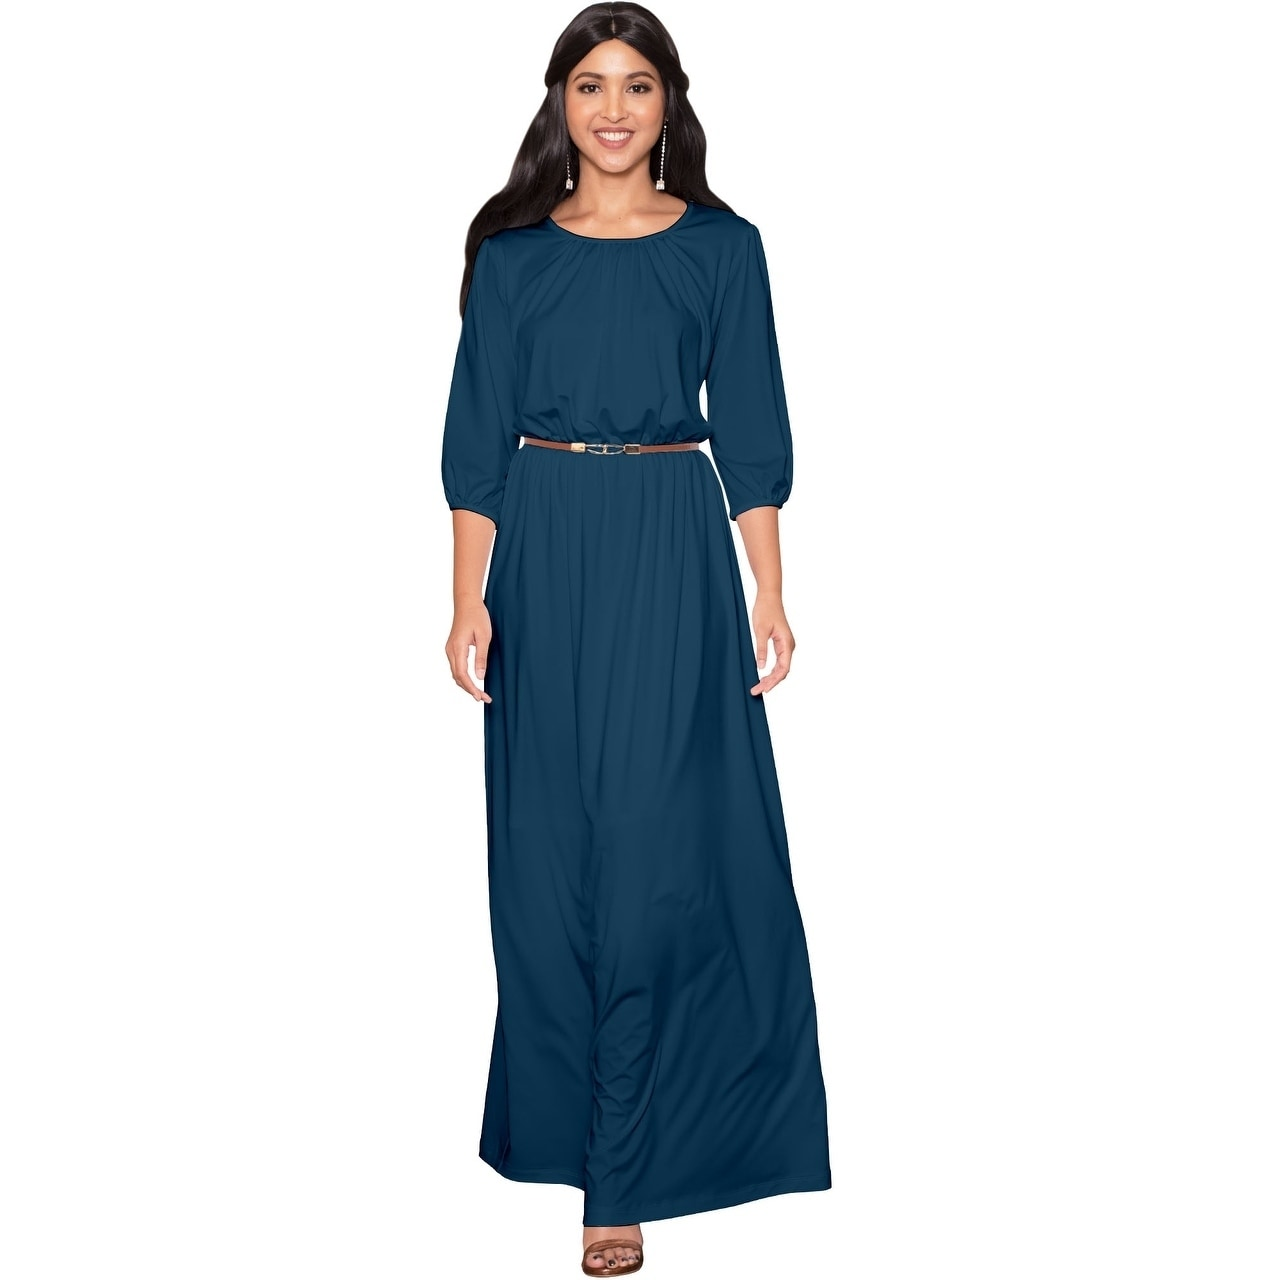 27a30c3ae099d KOH KOH Women Round Neck 3 4 Sleeve Cocktail Long Maxi Dress with Belt